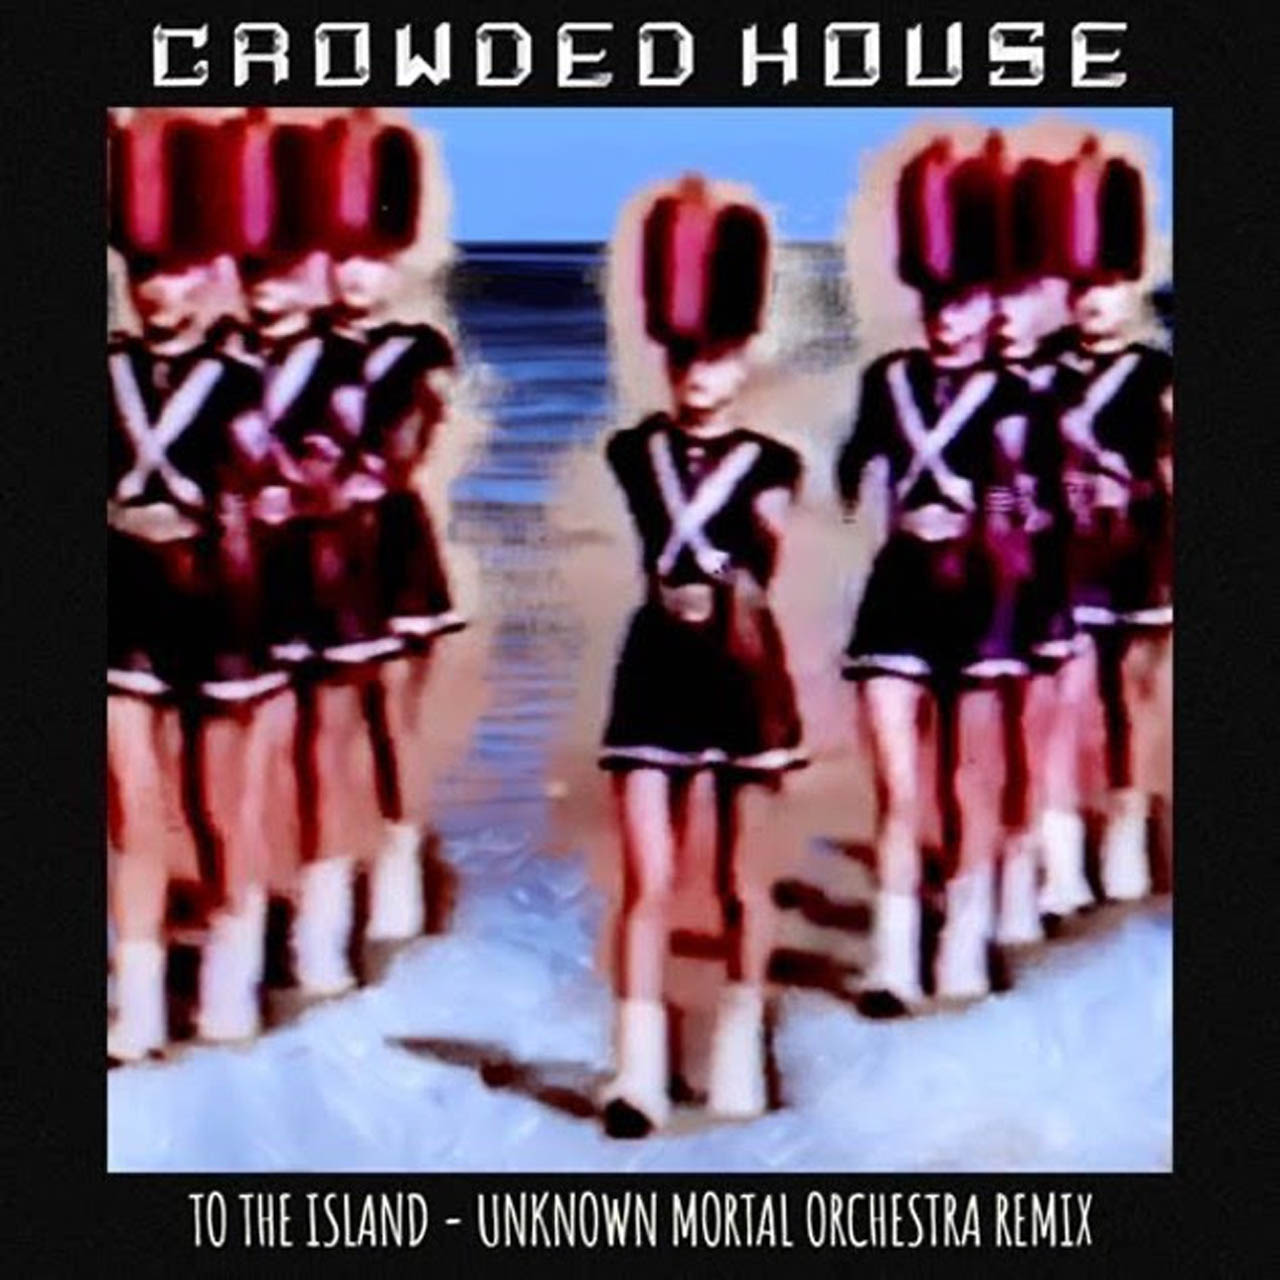 Crowded House - To the Island